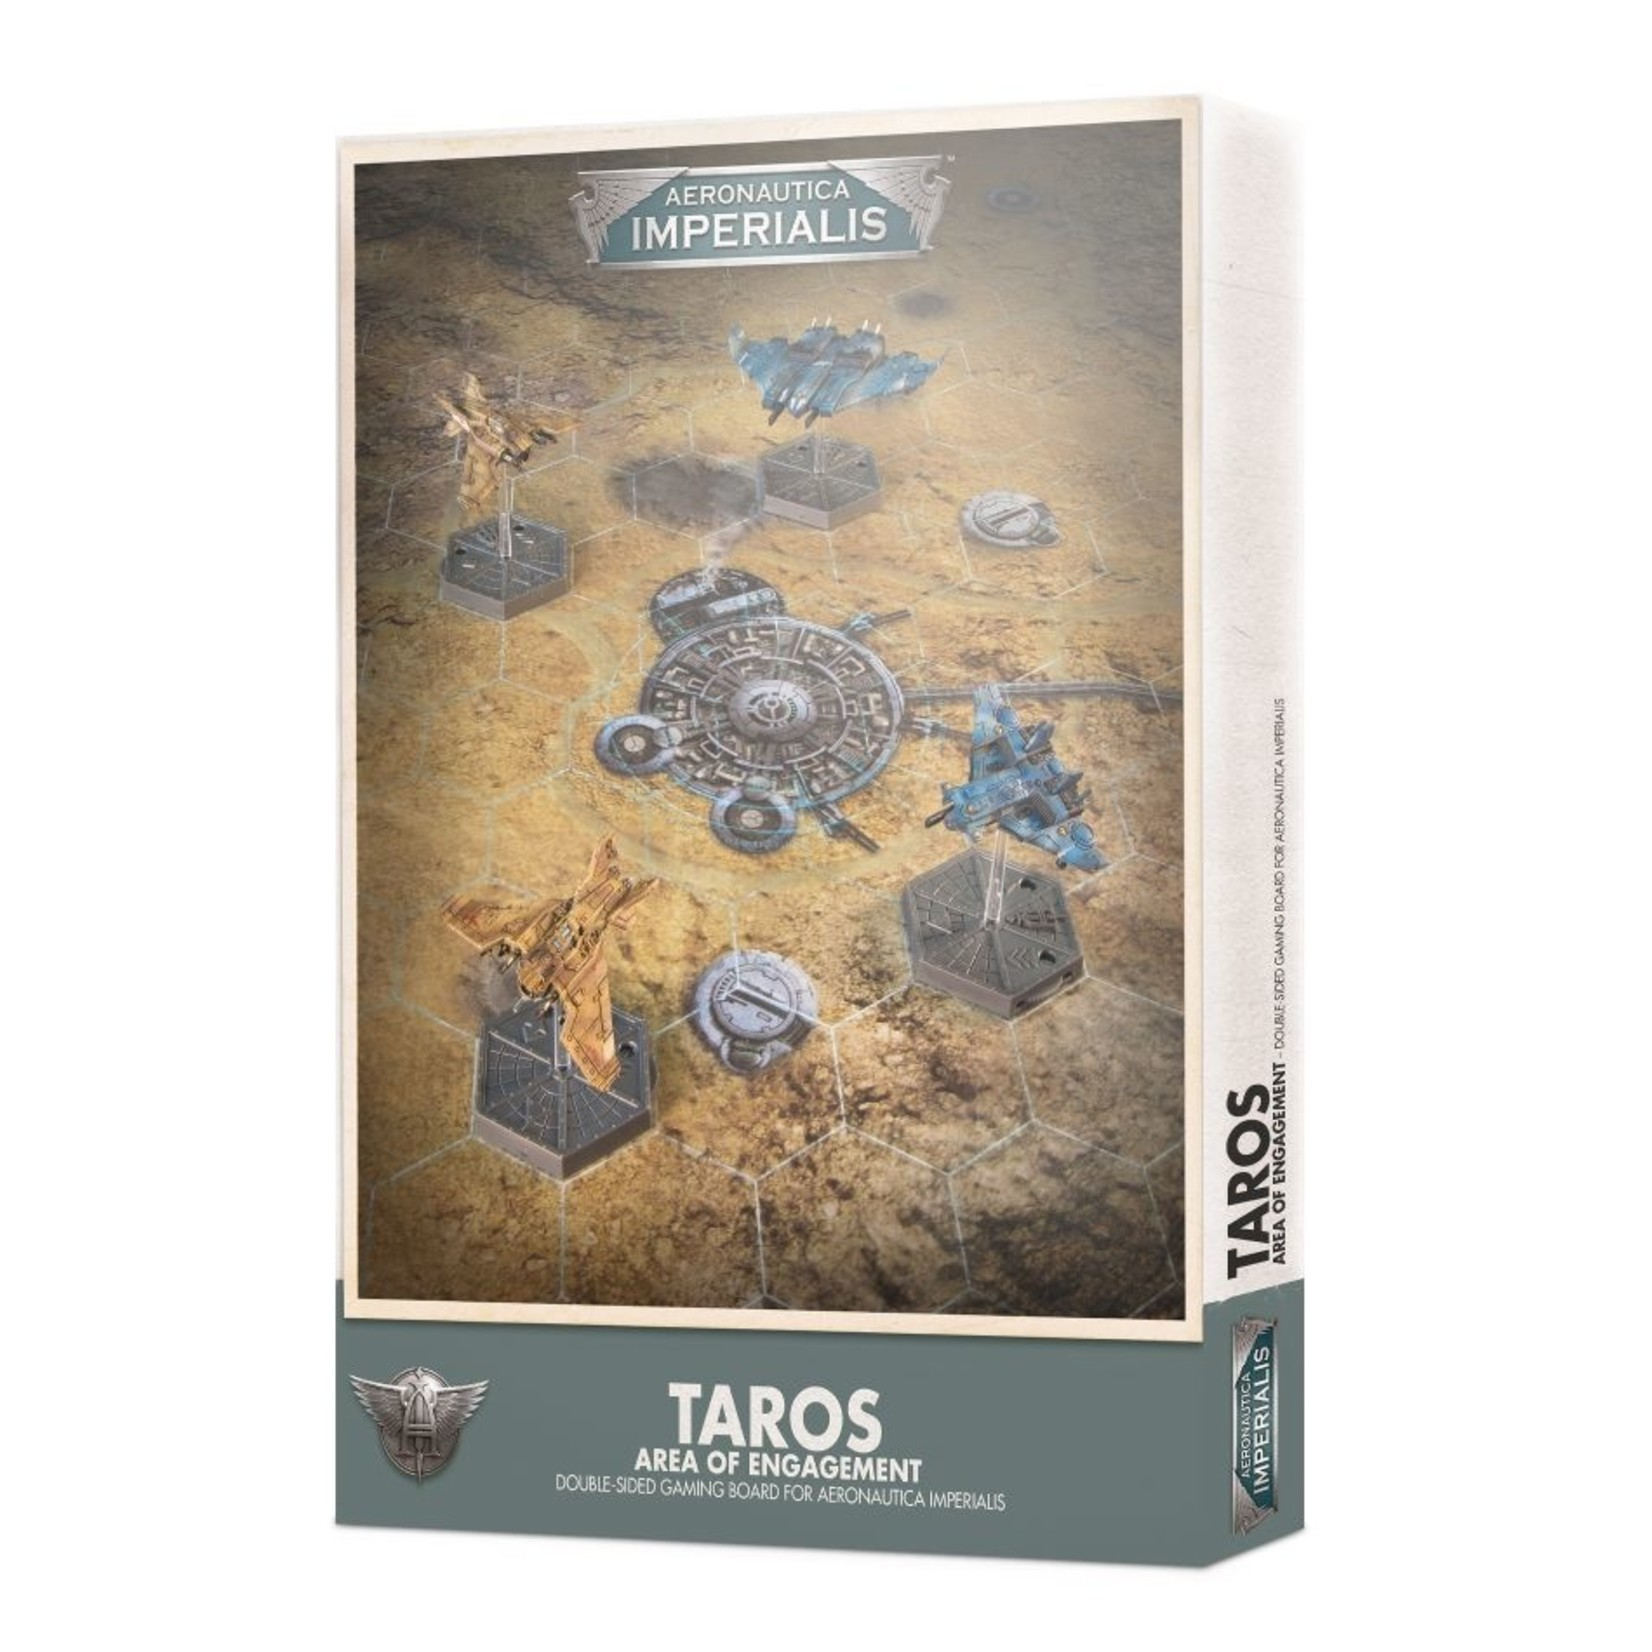 Games Workshop Aeronautica Imperialis: Taros Age of Engagement